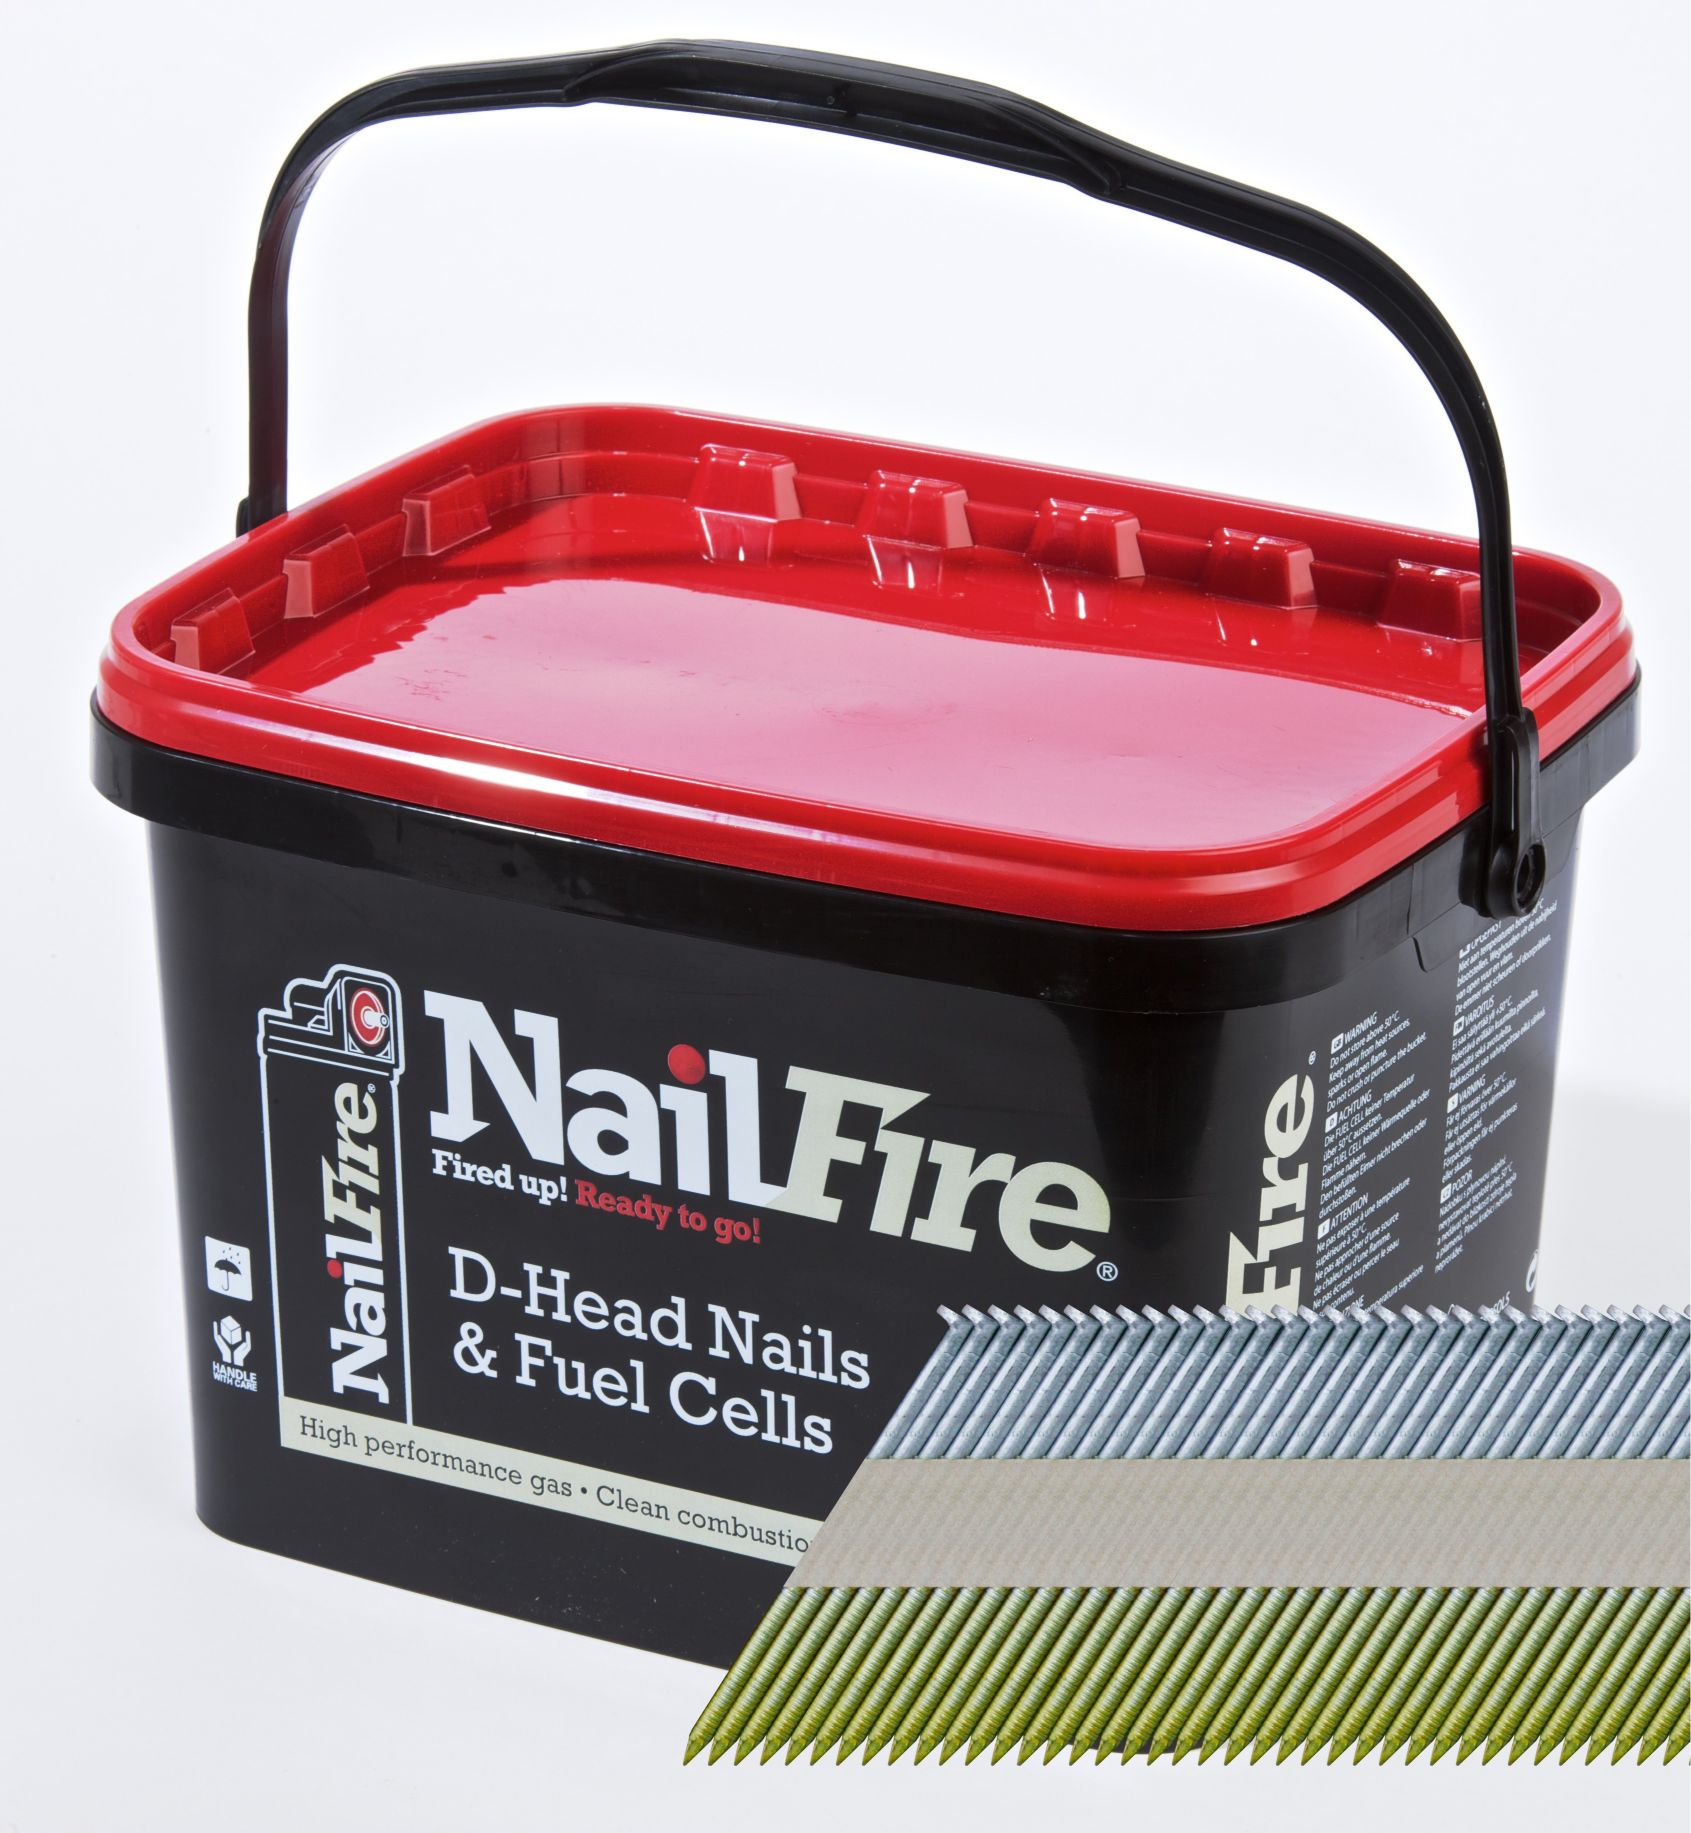 NAILFIRE 1ST FIX E-GALV RING NAIL & FUEL PACK 50MM (TUB OF 3000)